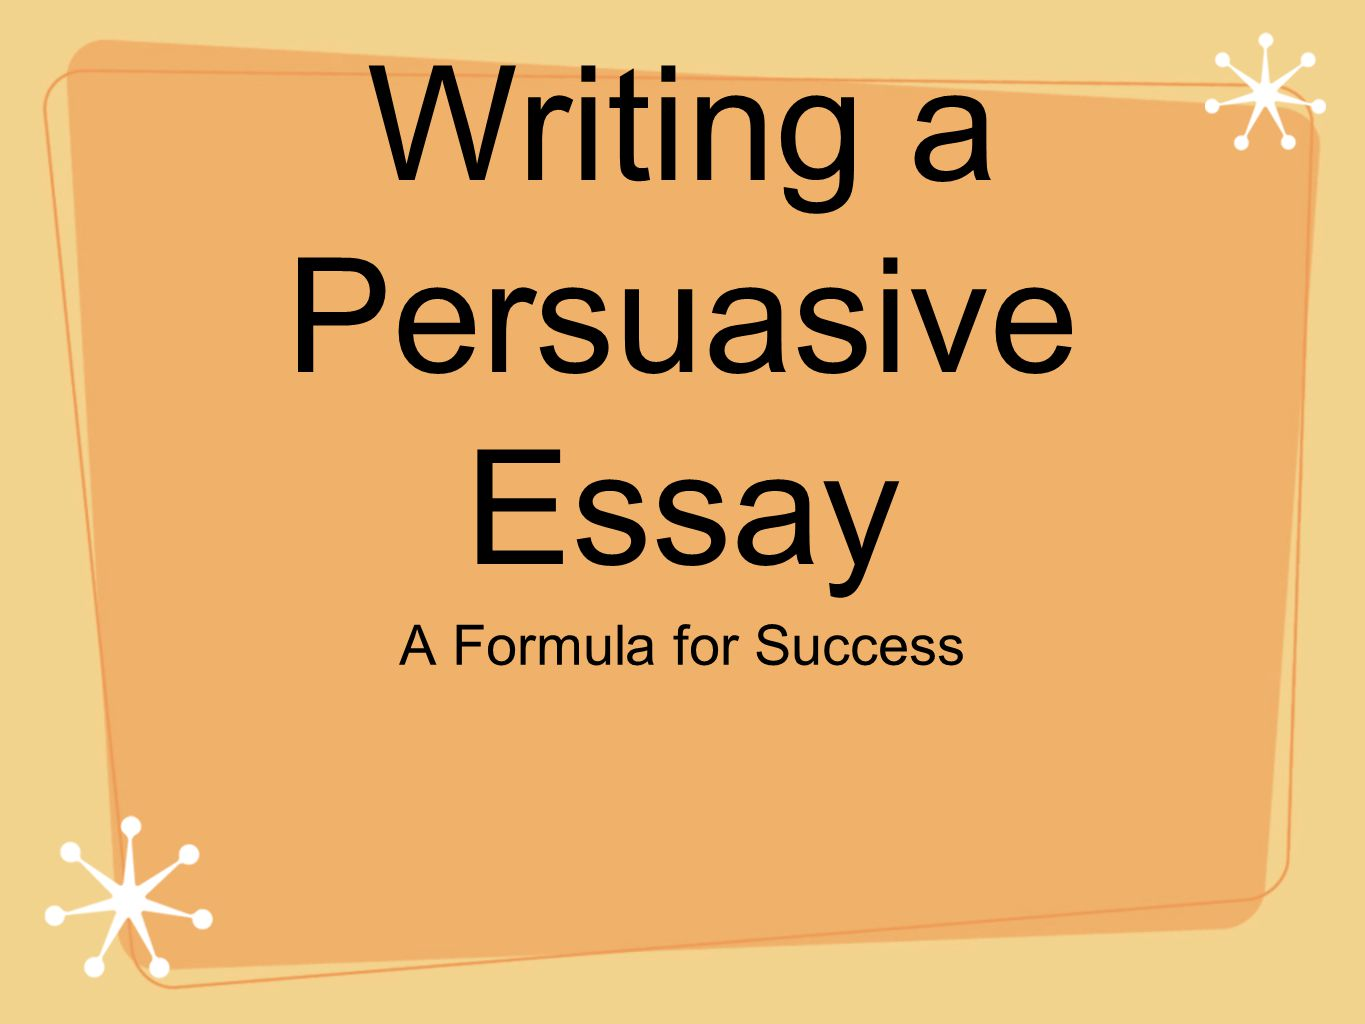 writing persuasive essay powerpoint In this lesson you will learn to write an introductory paragraph to engage the  reader in the topic by telling your reader why this issue is.